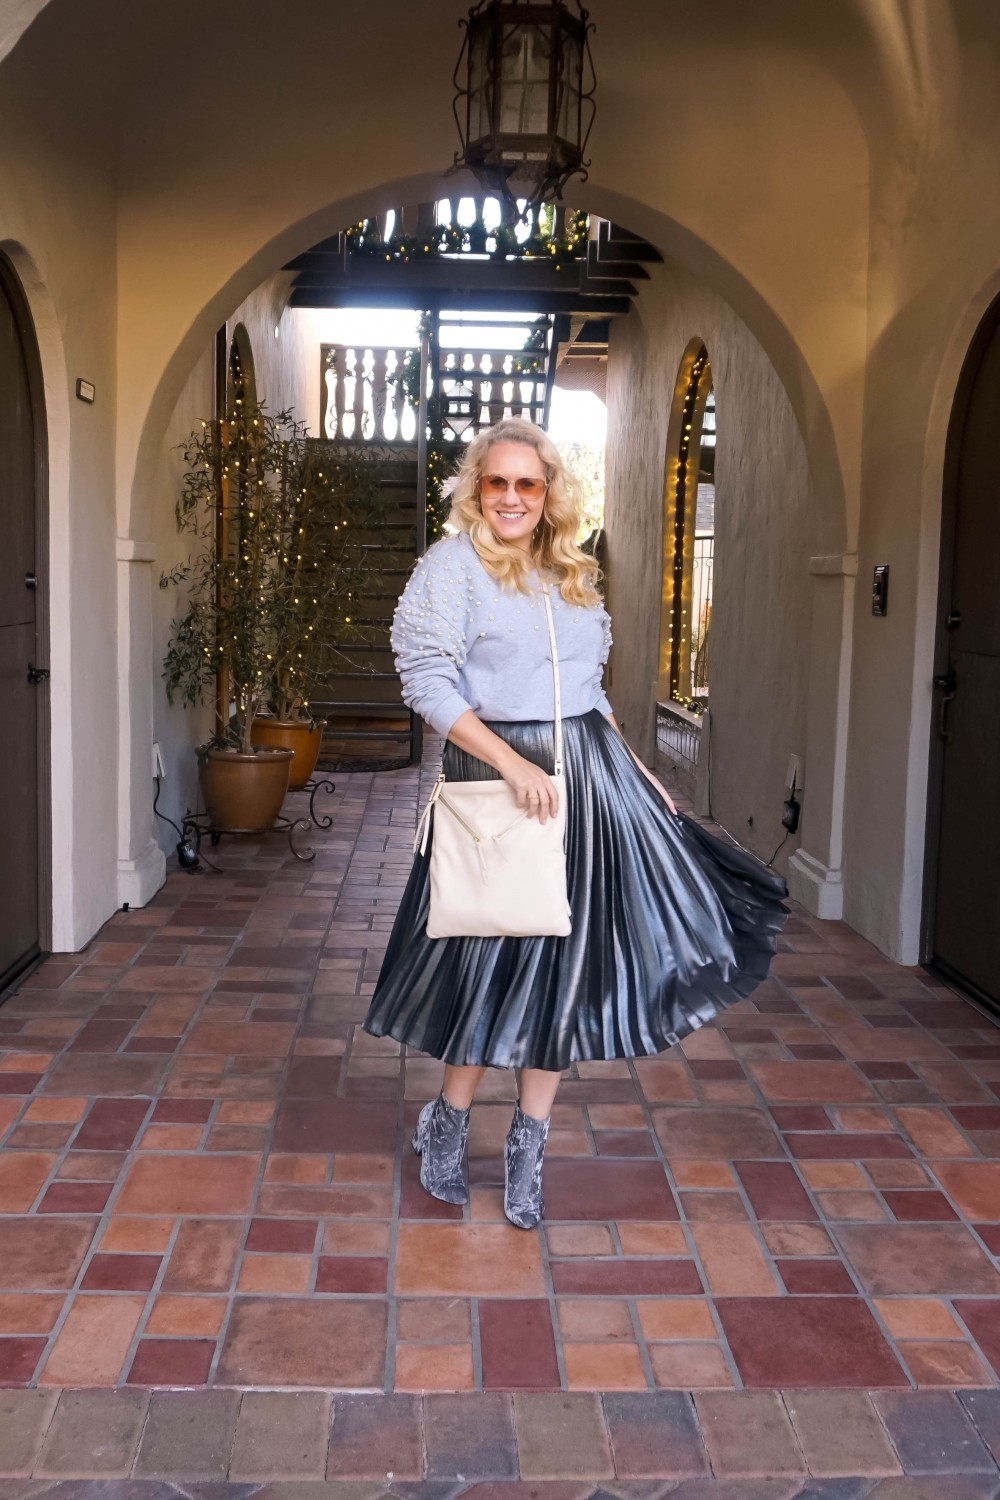 Pearl Embellished Sweatshirt, Monochromatic Outfit, Grey-tones, Metallic Pleated Skirt, Crushed Velvet Booties, Festive Outfit, Holiday Style, Outfit Inspiration, Bay Area Fashion Blogger, Have Need Want